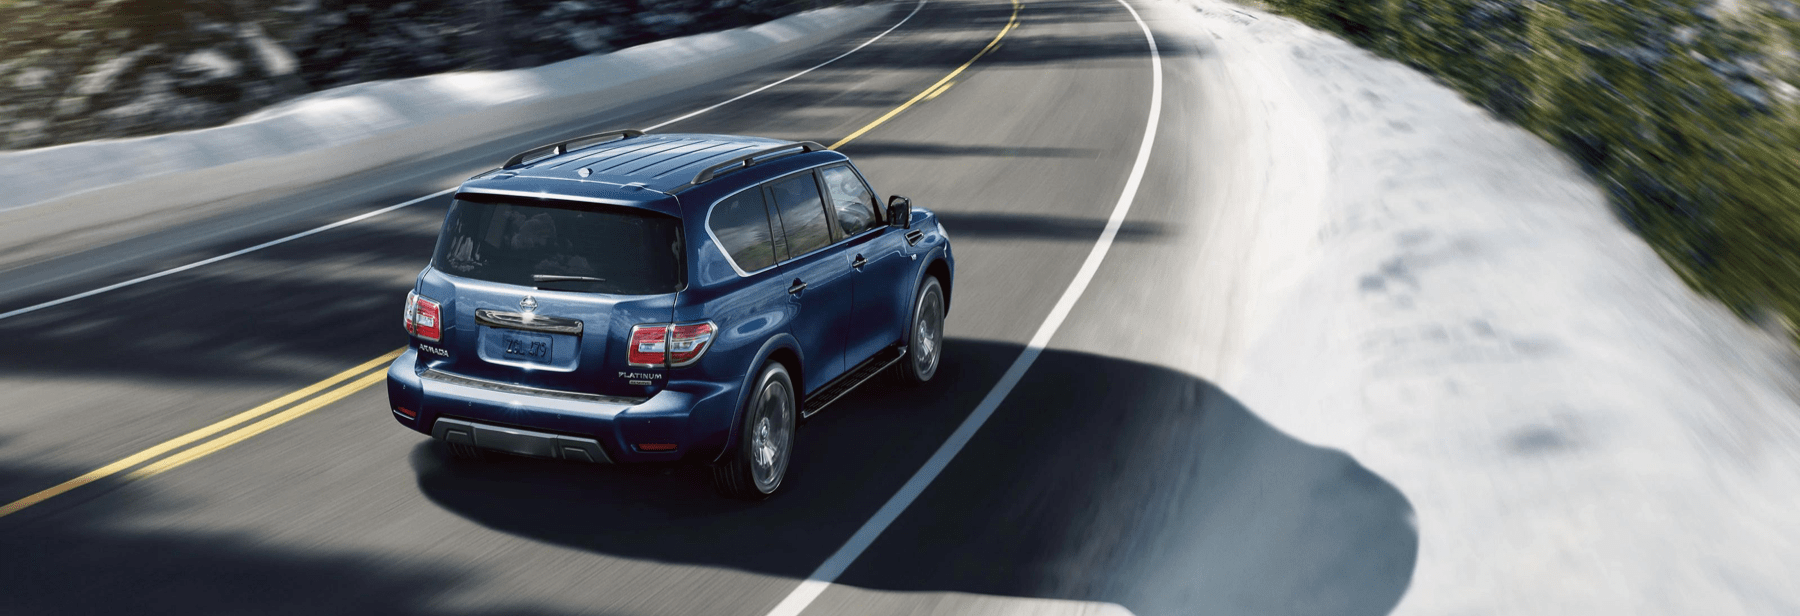 2020 Nissan Armada driving on highway